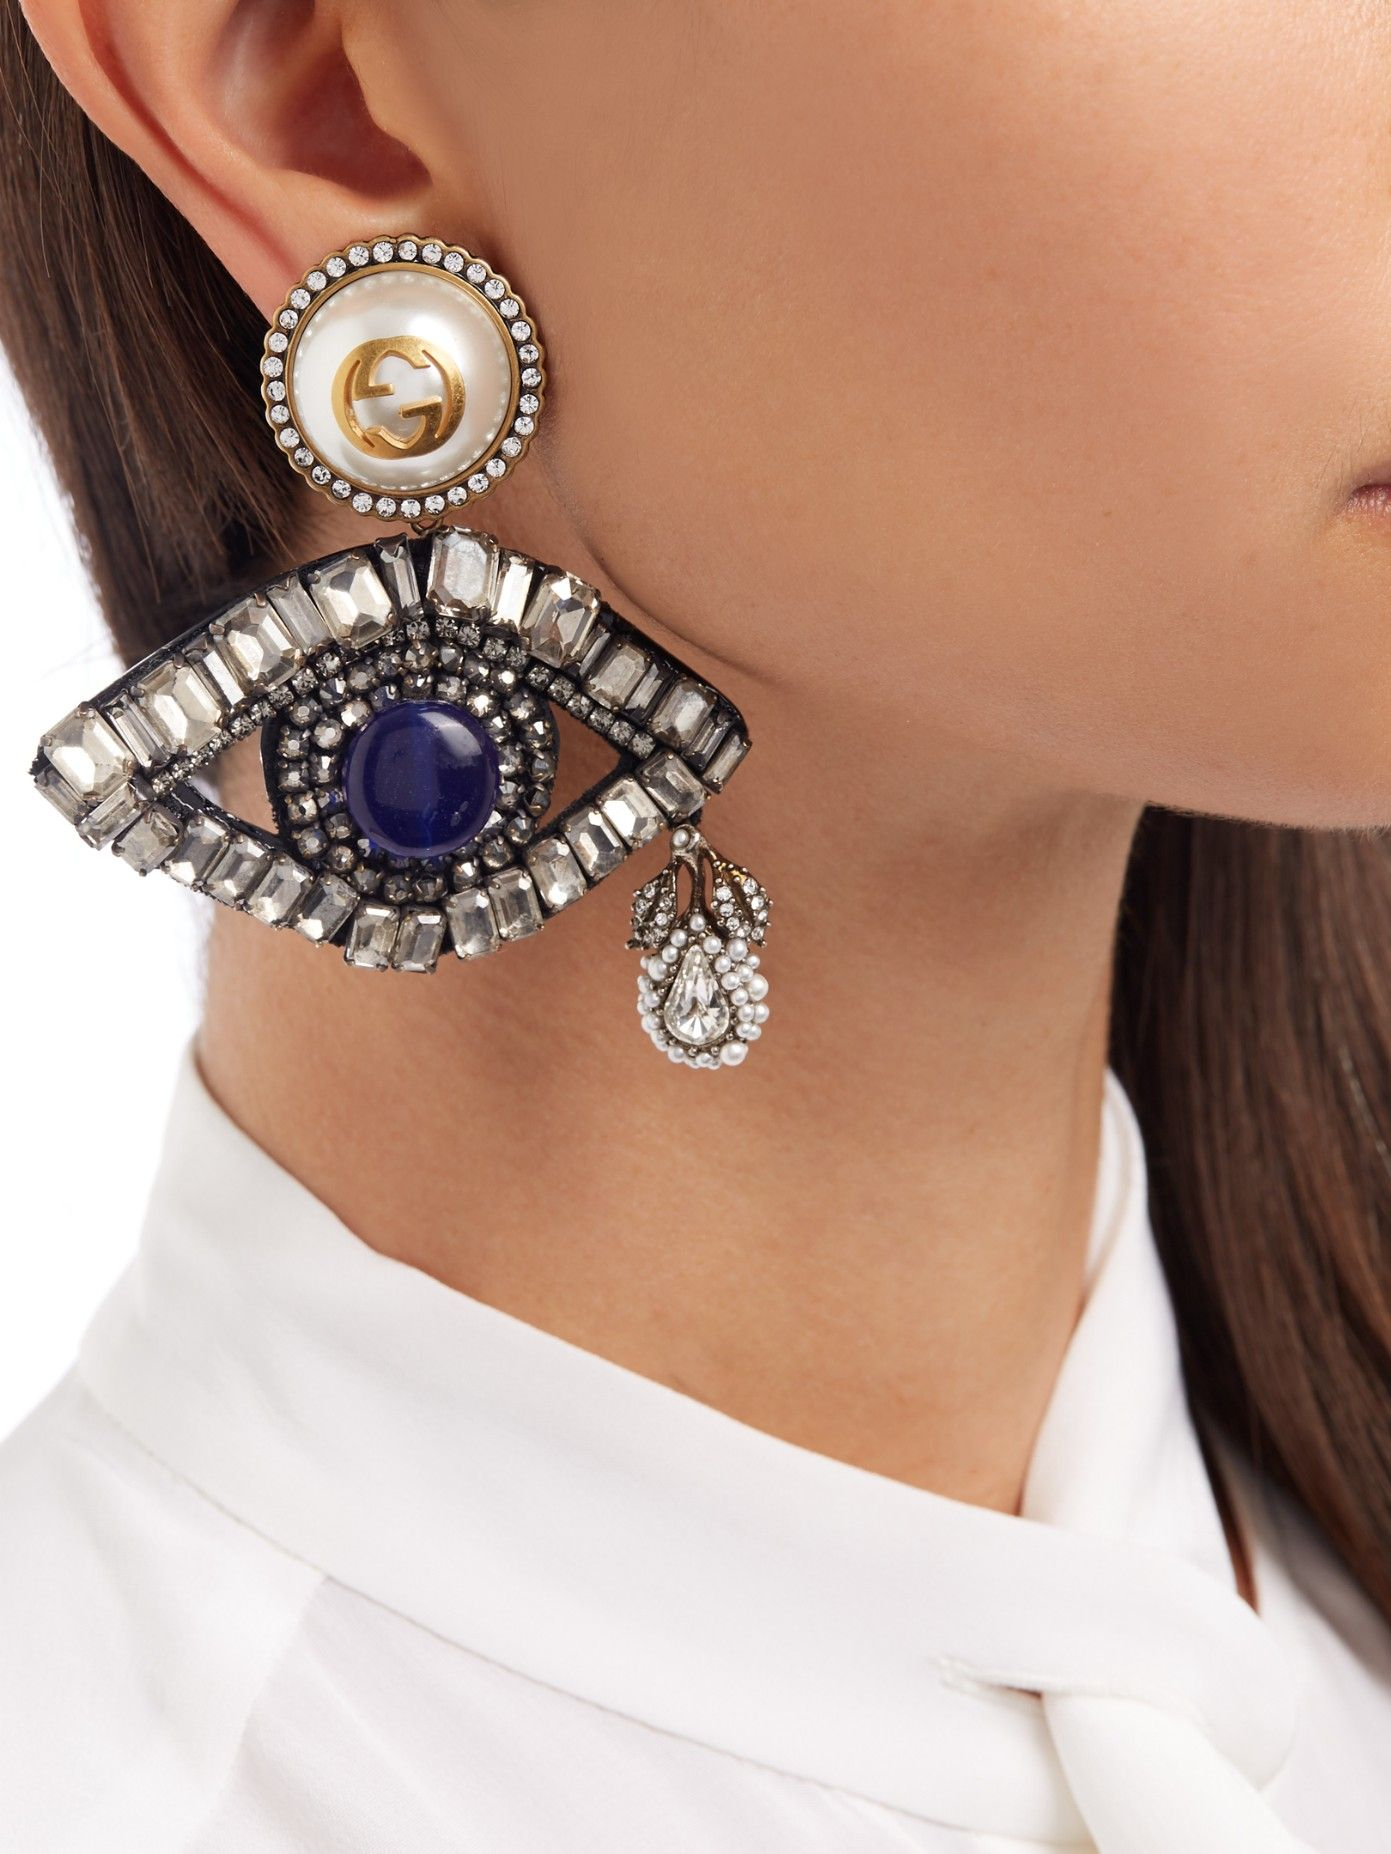 bab74b8c80d Gucci continues its maximalist mood this season with these evil  eye-inspired earrings. Wear hair to the side to show them off fully.